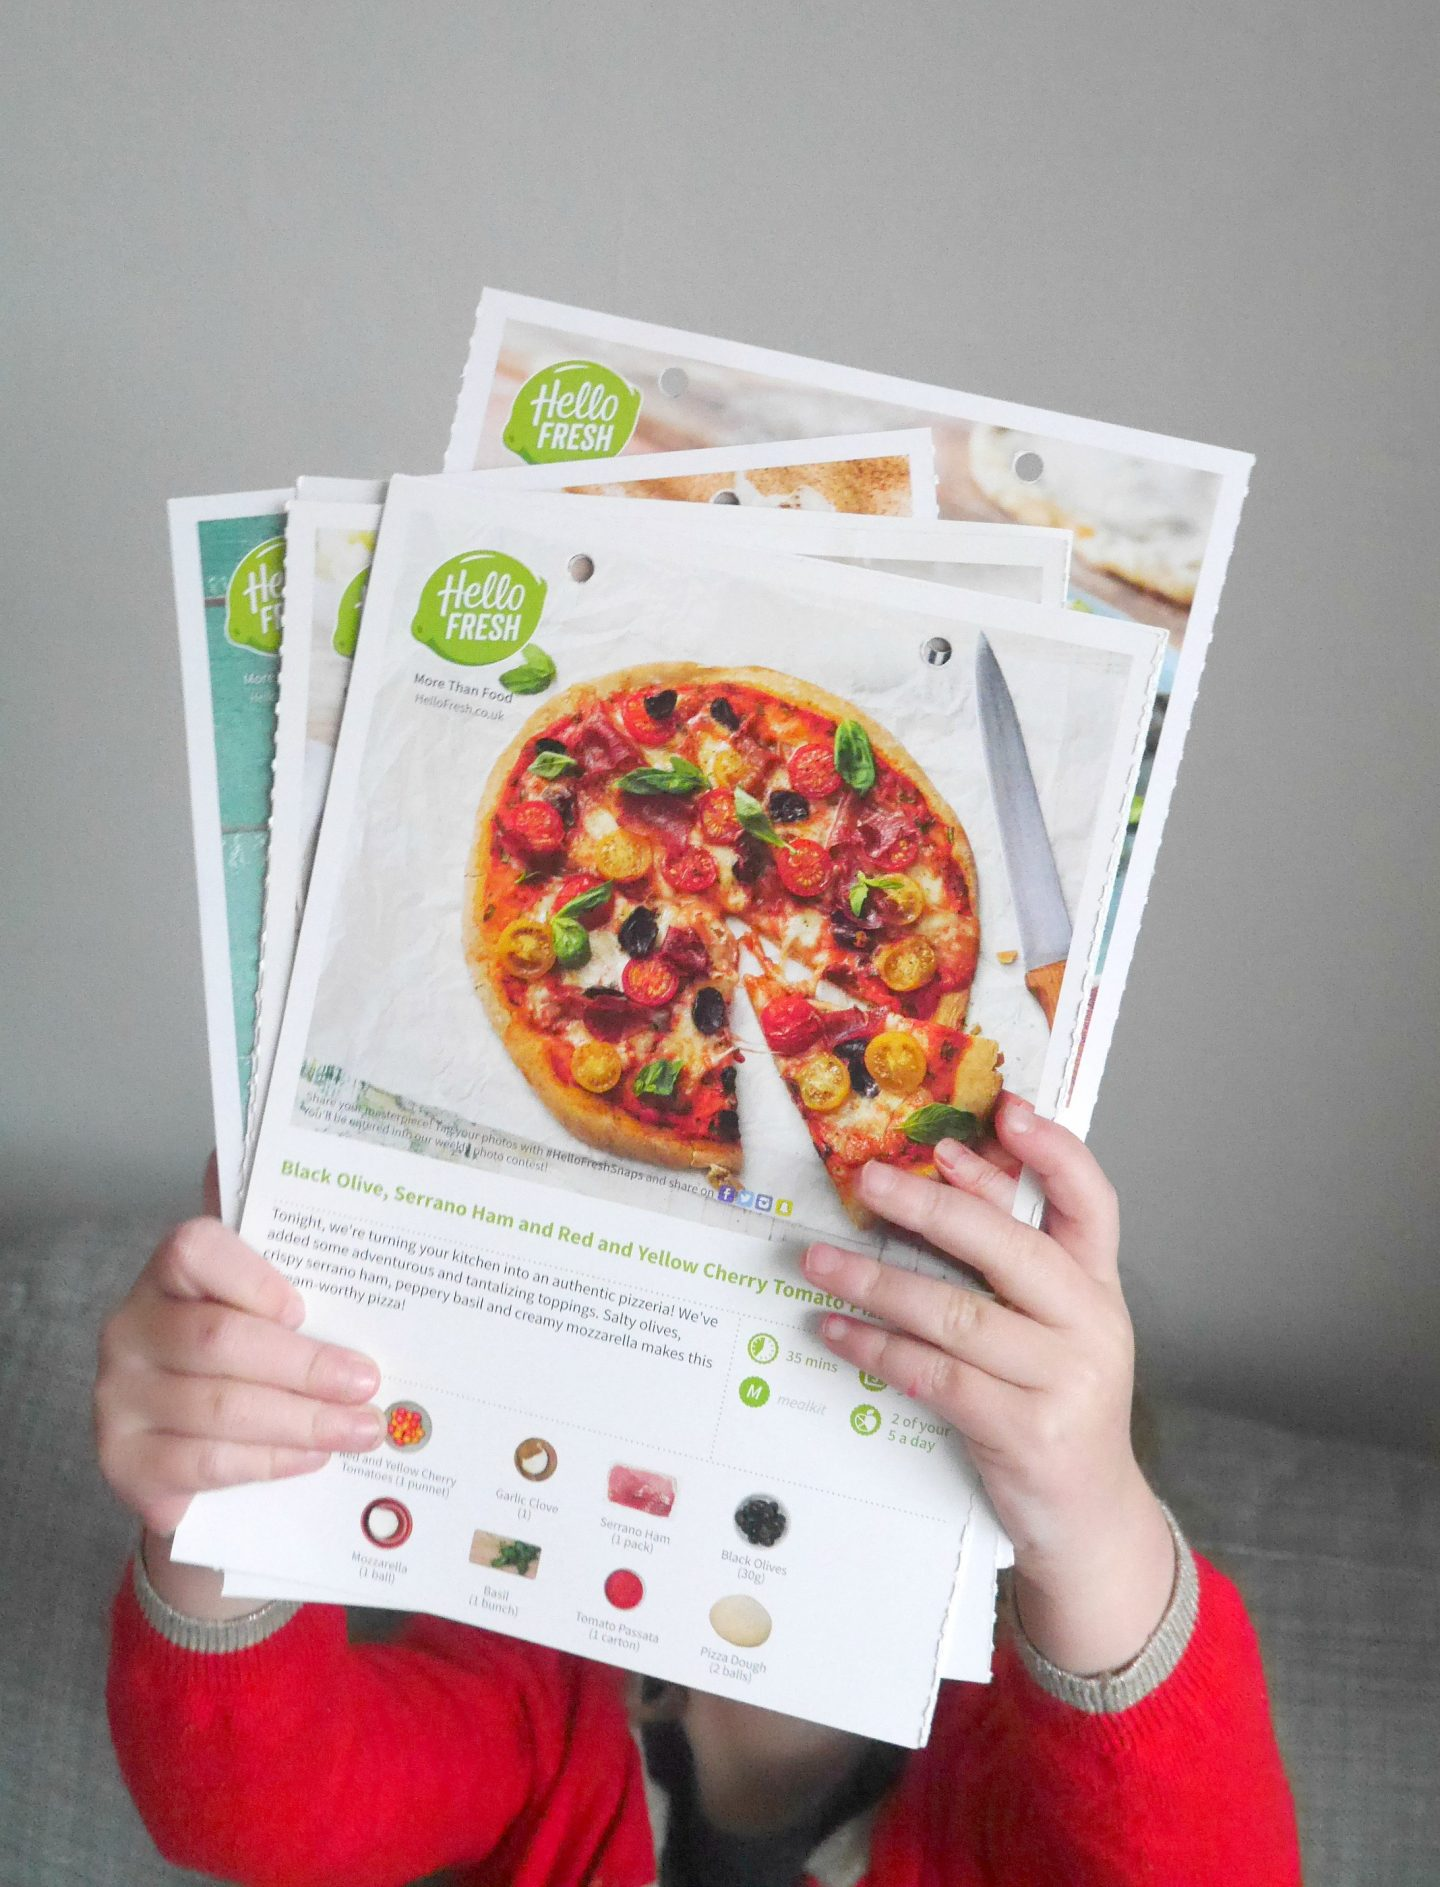 HelloFresh and the Dinner Time challenge